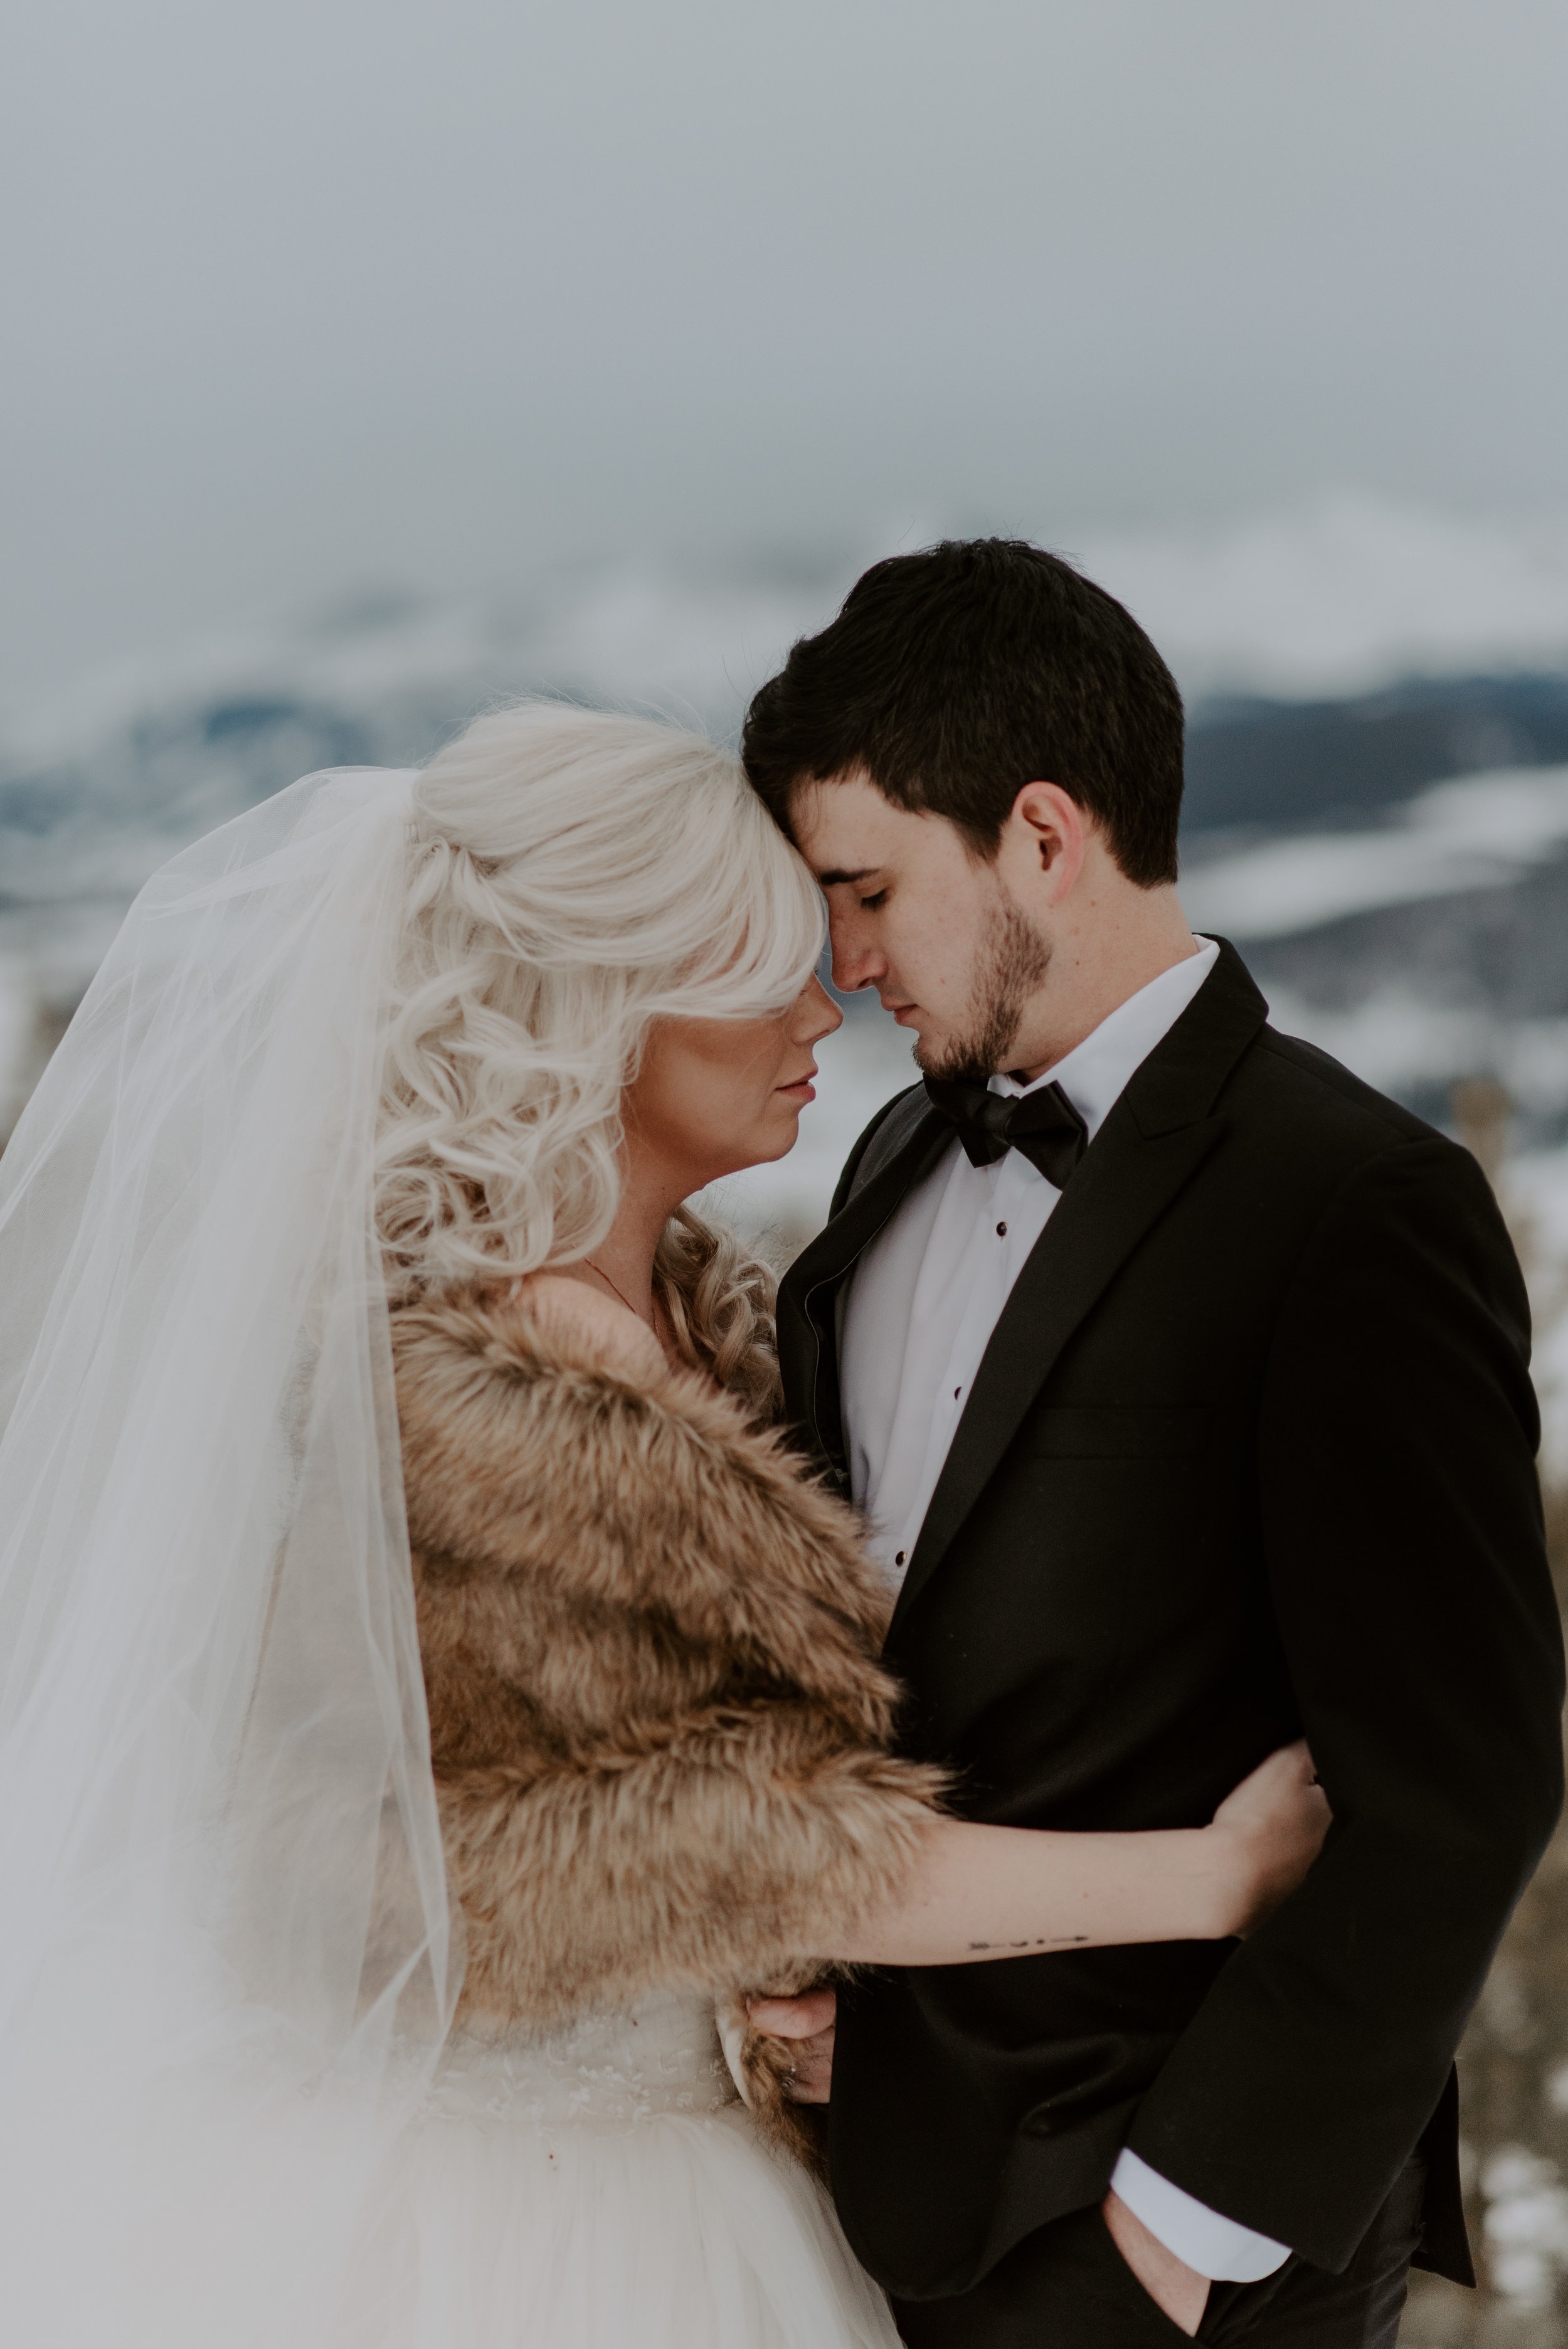 Colorado Sapphire Point wedding and elopement photographer.